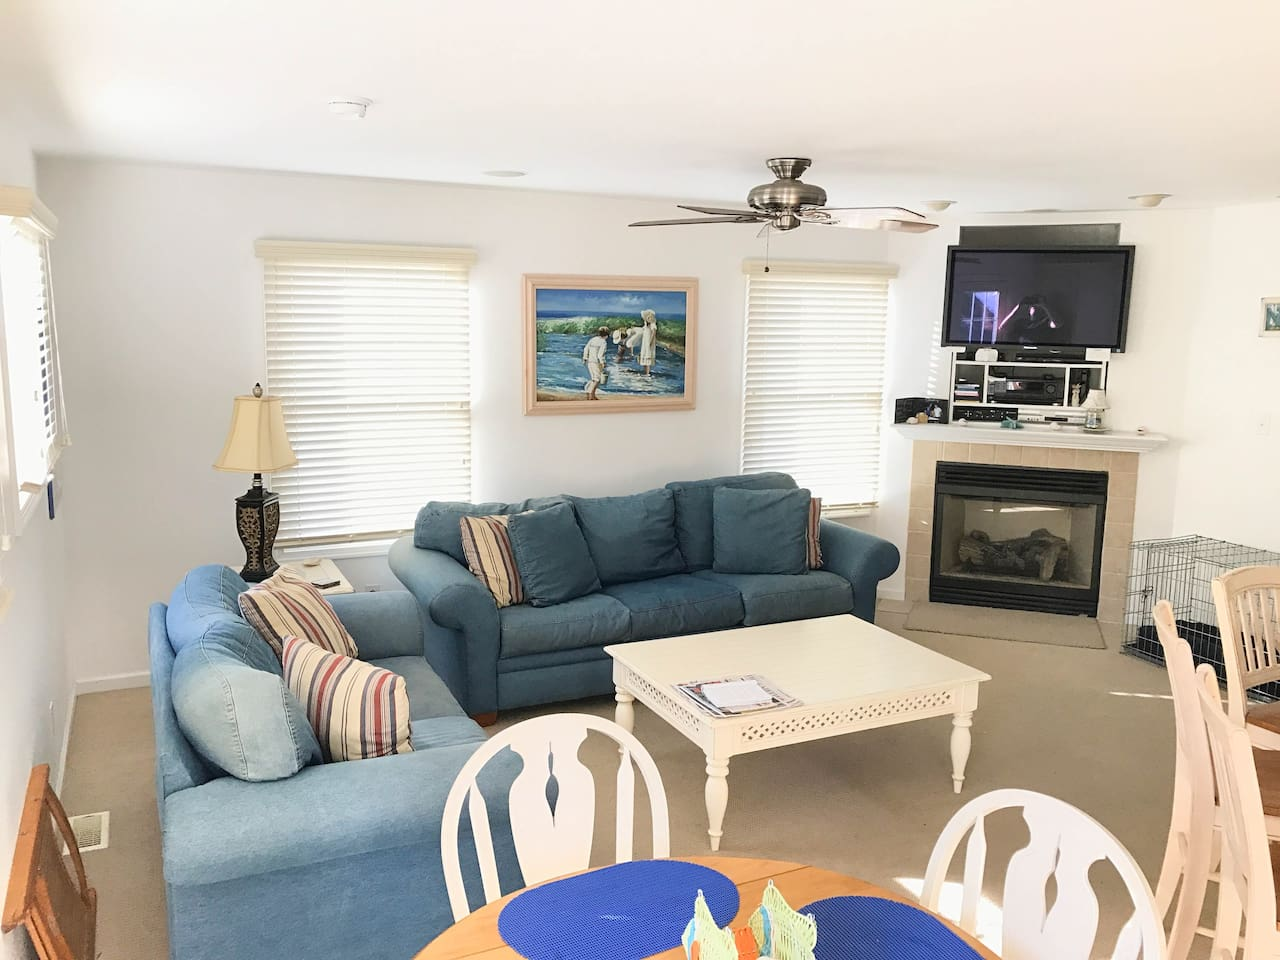 Spacious Living Room with TV and Fireplace (even equipped with a Sofa Bed to accommodate more guests, if need be!)